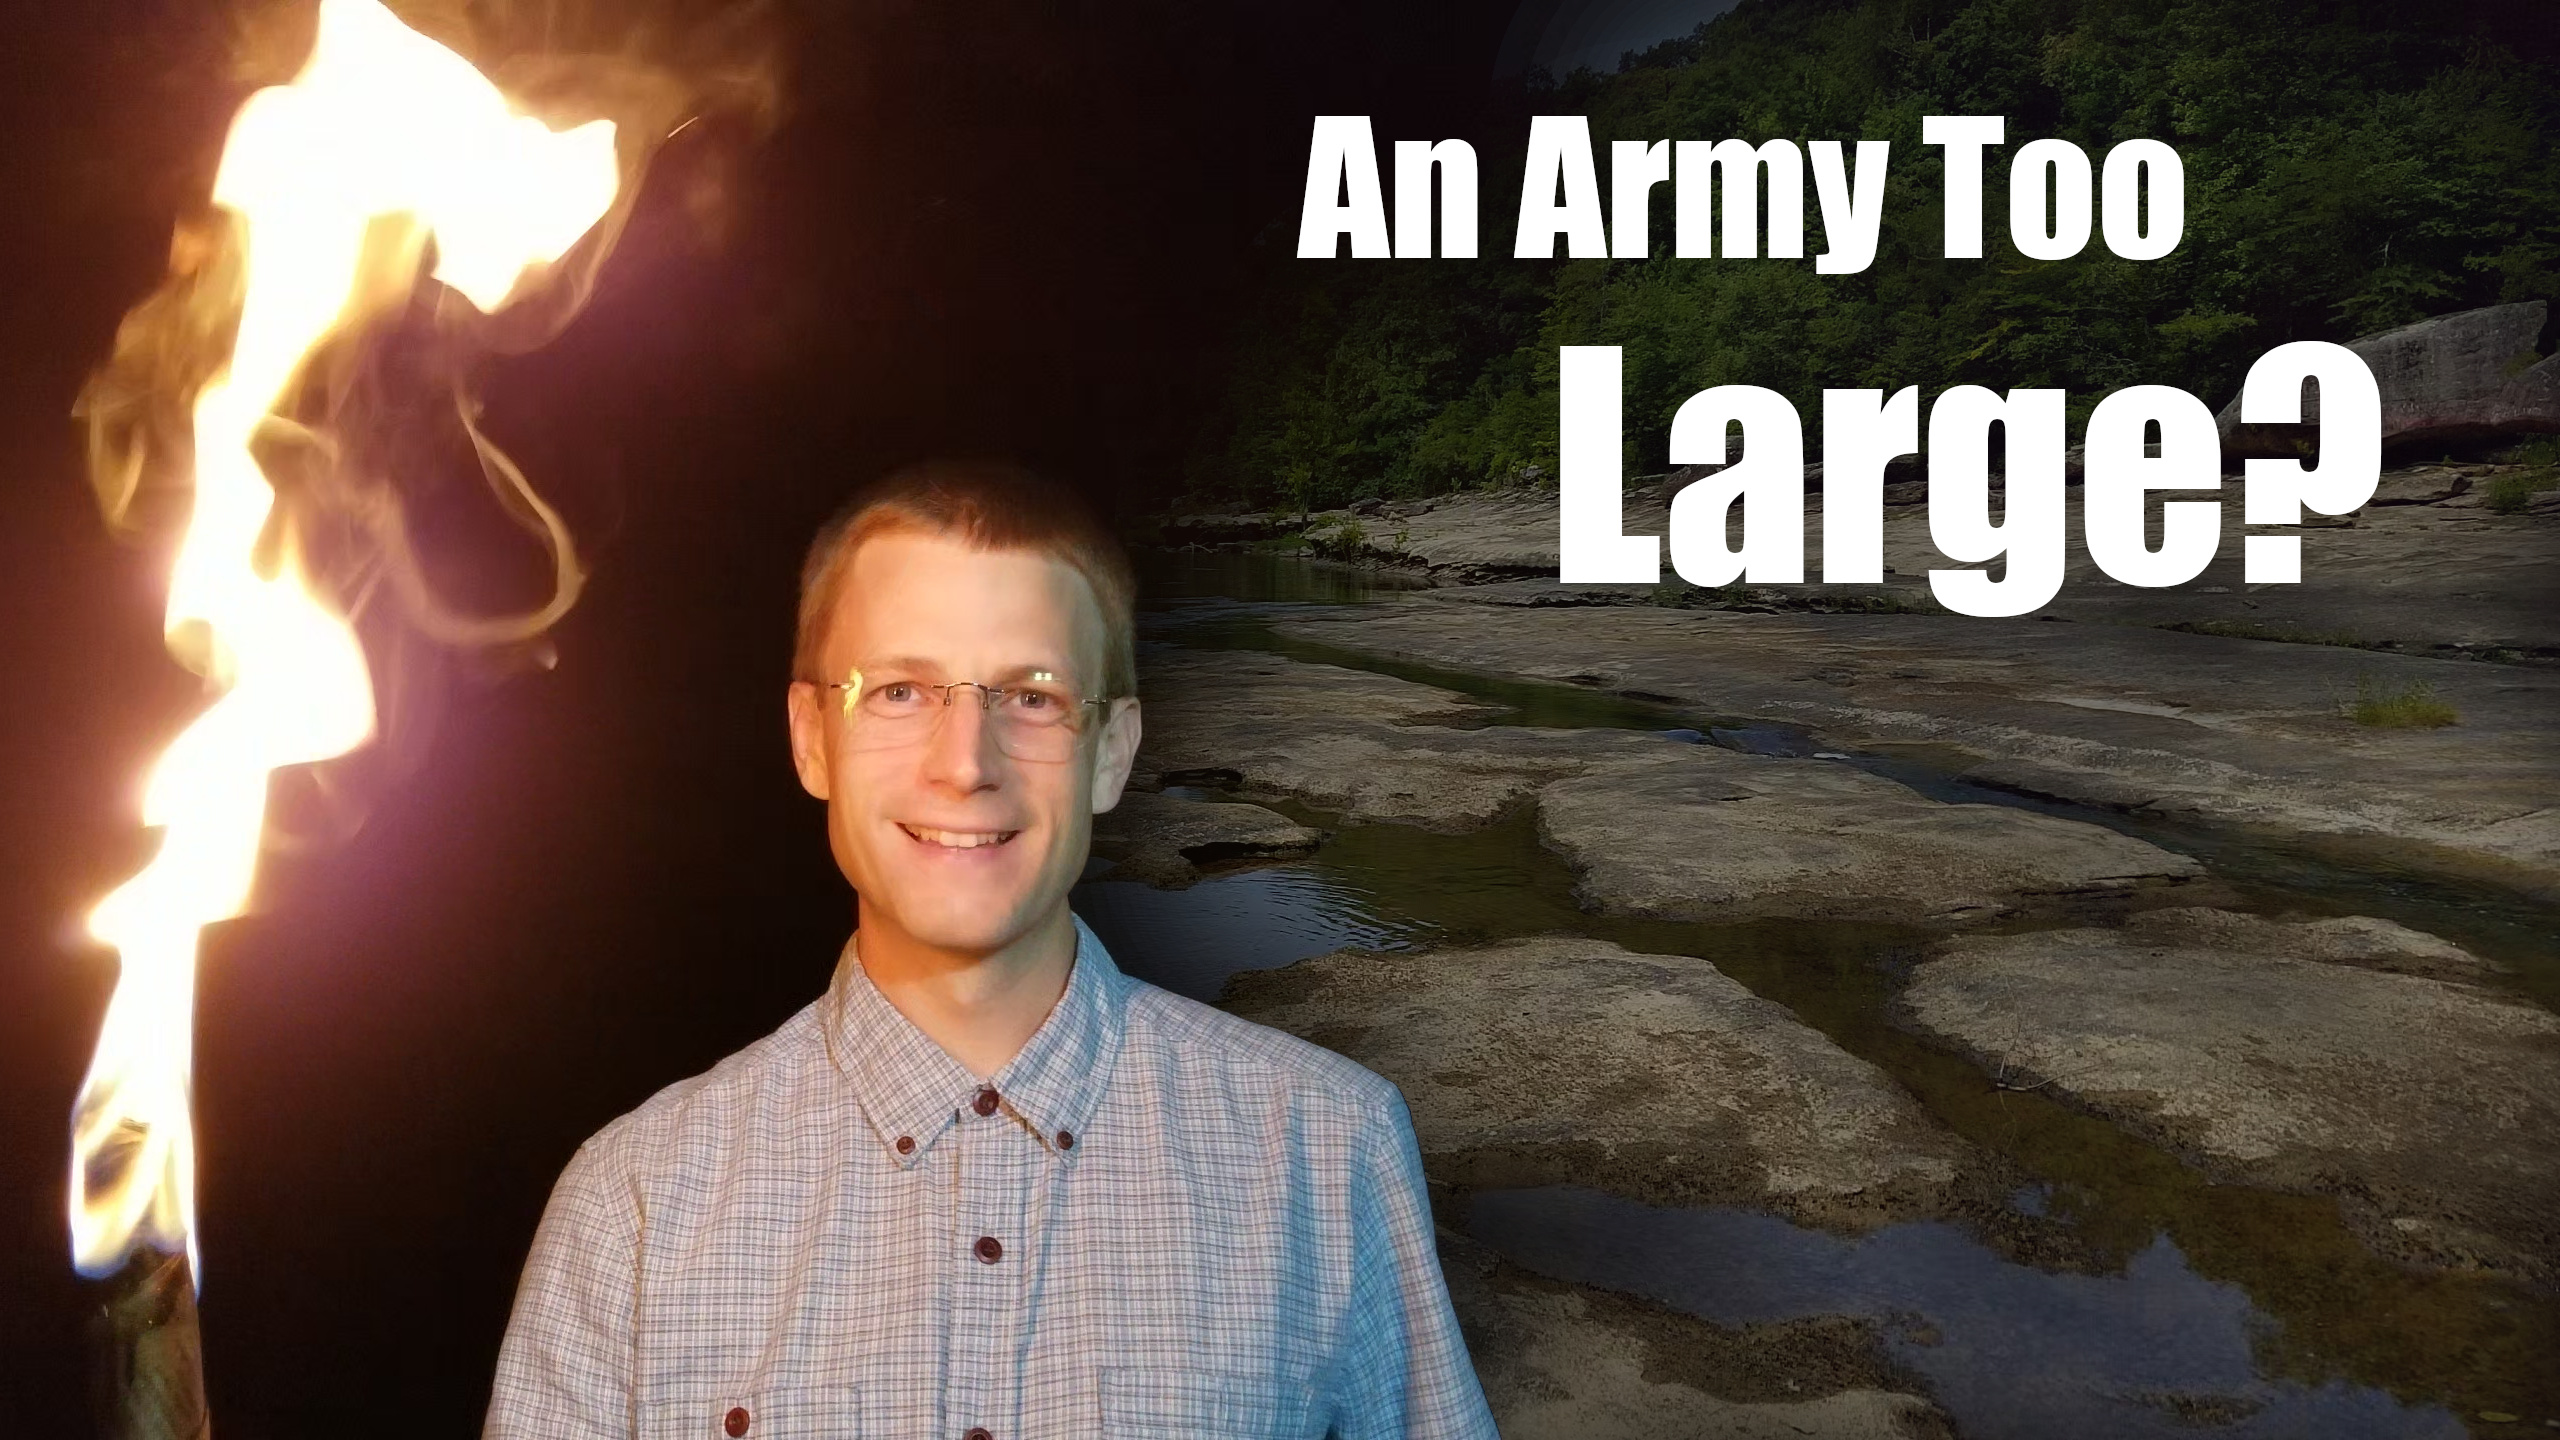 An Army Too Large?